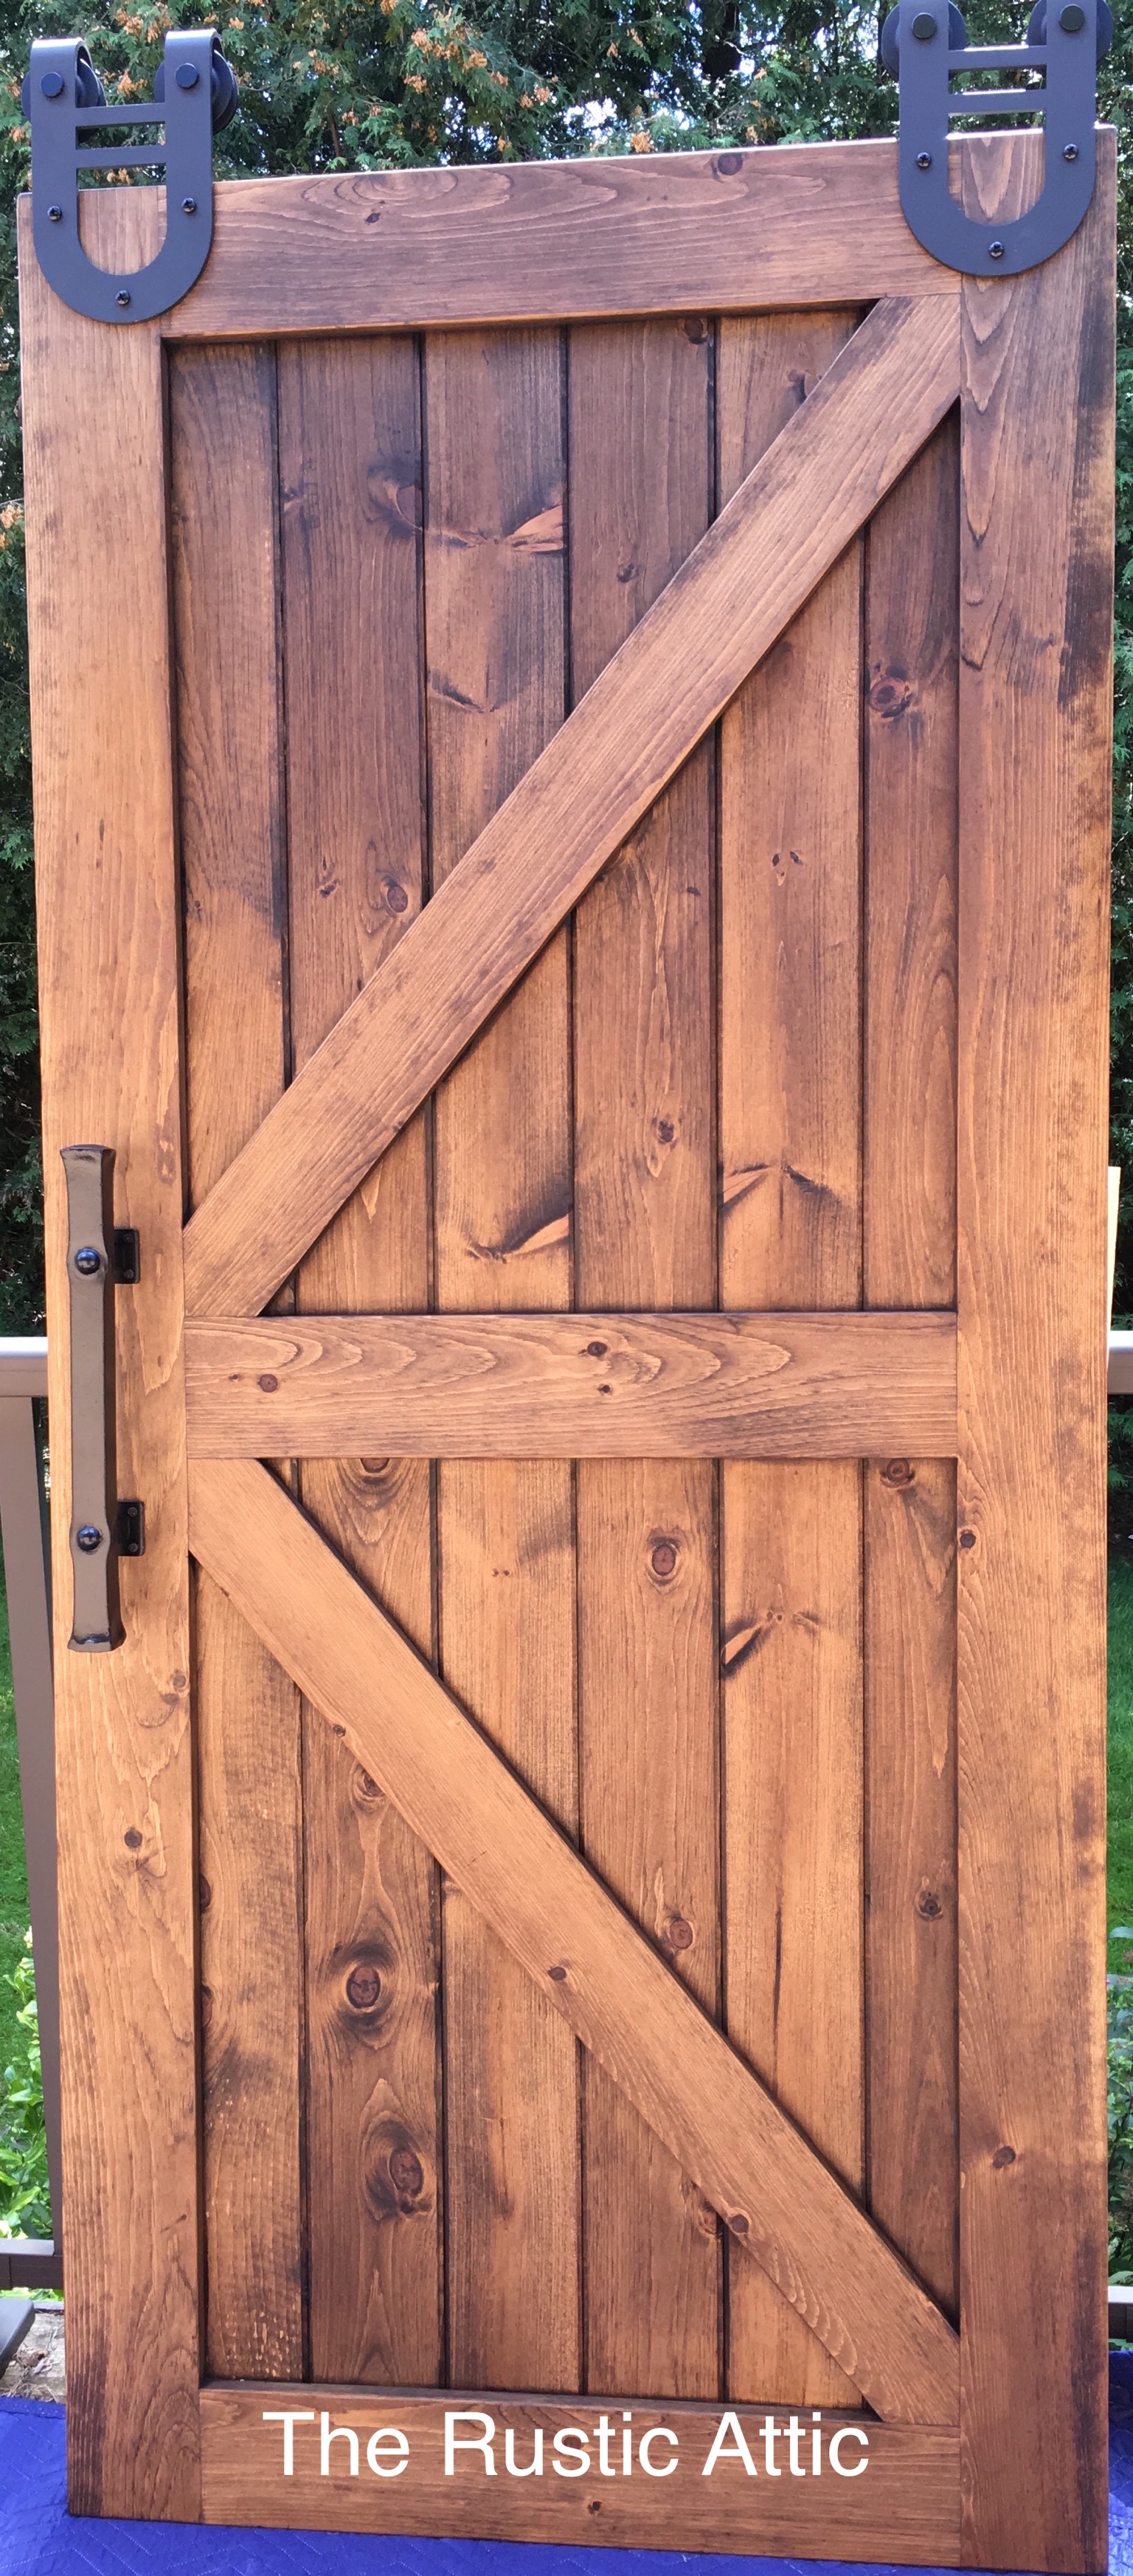 calhome ab in style barns and door sliding bronze hardware bent set strap classic outdoor antique p sdh barn track